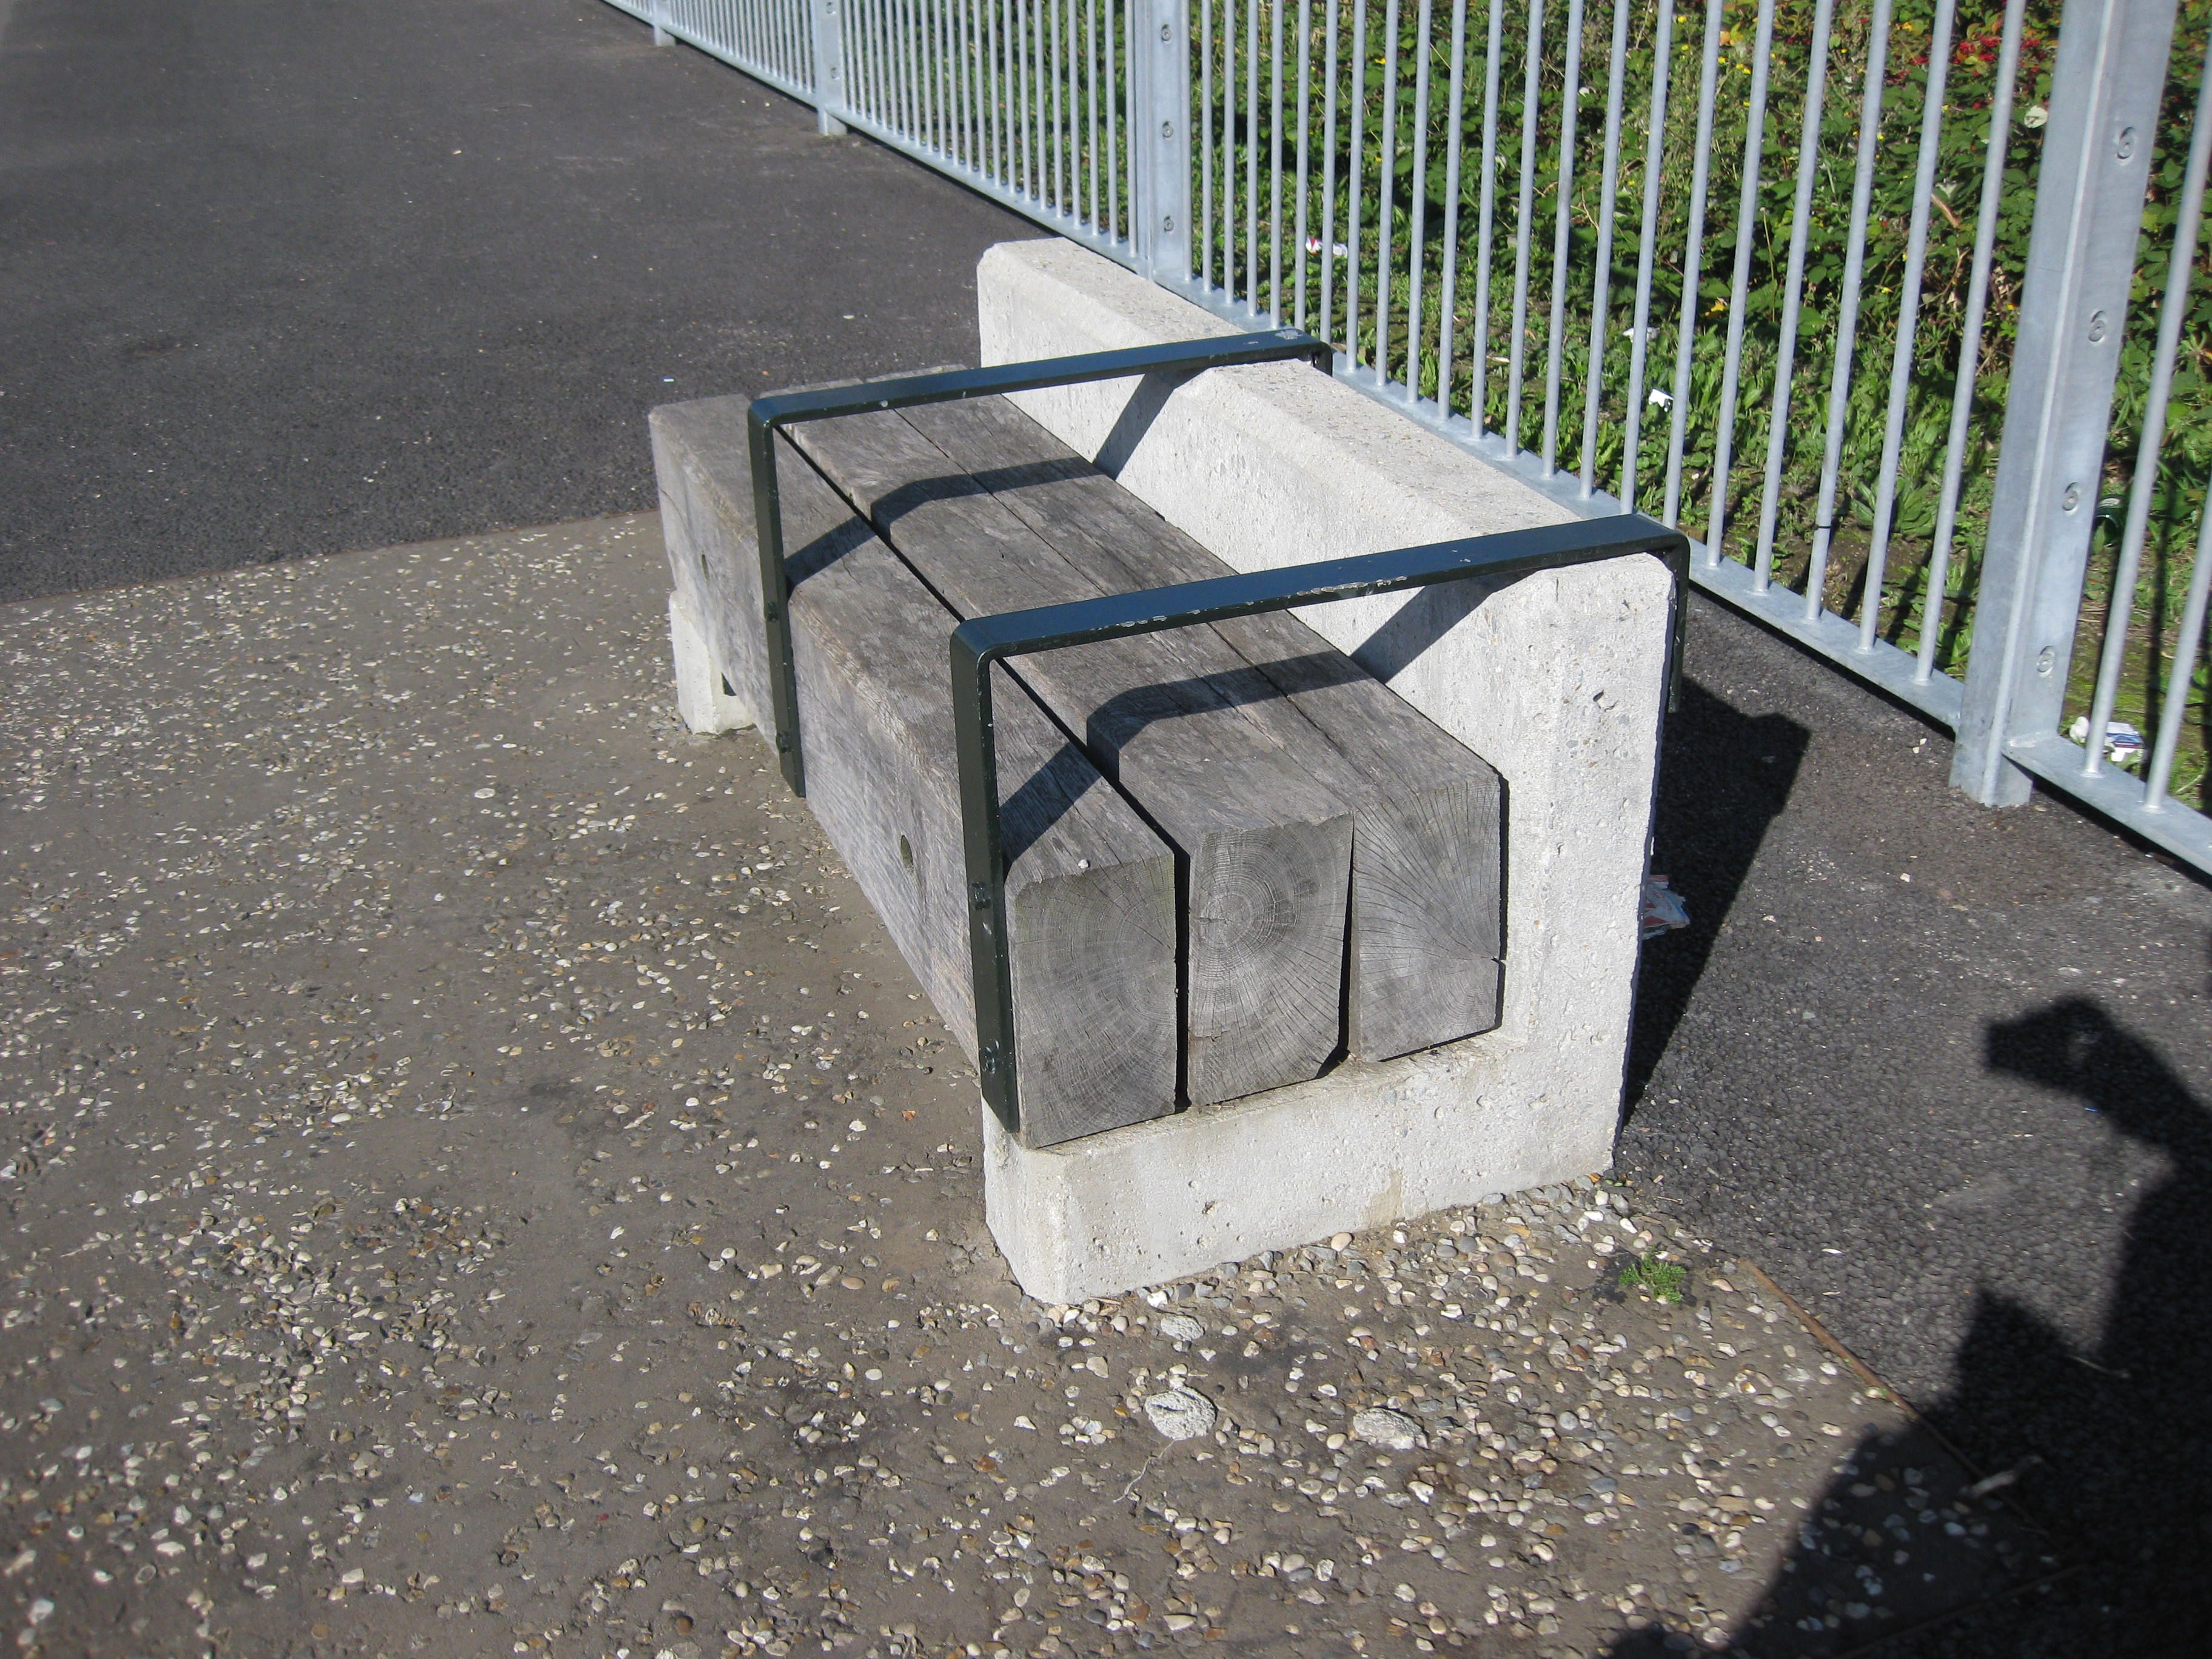 1000 Images About Mobilier Urbain Beton On Pinterest Concrete Bench Street Furniture And Public